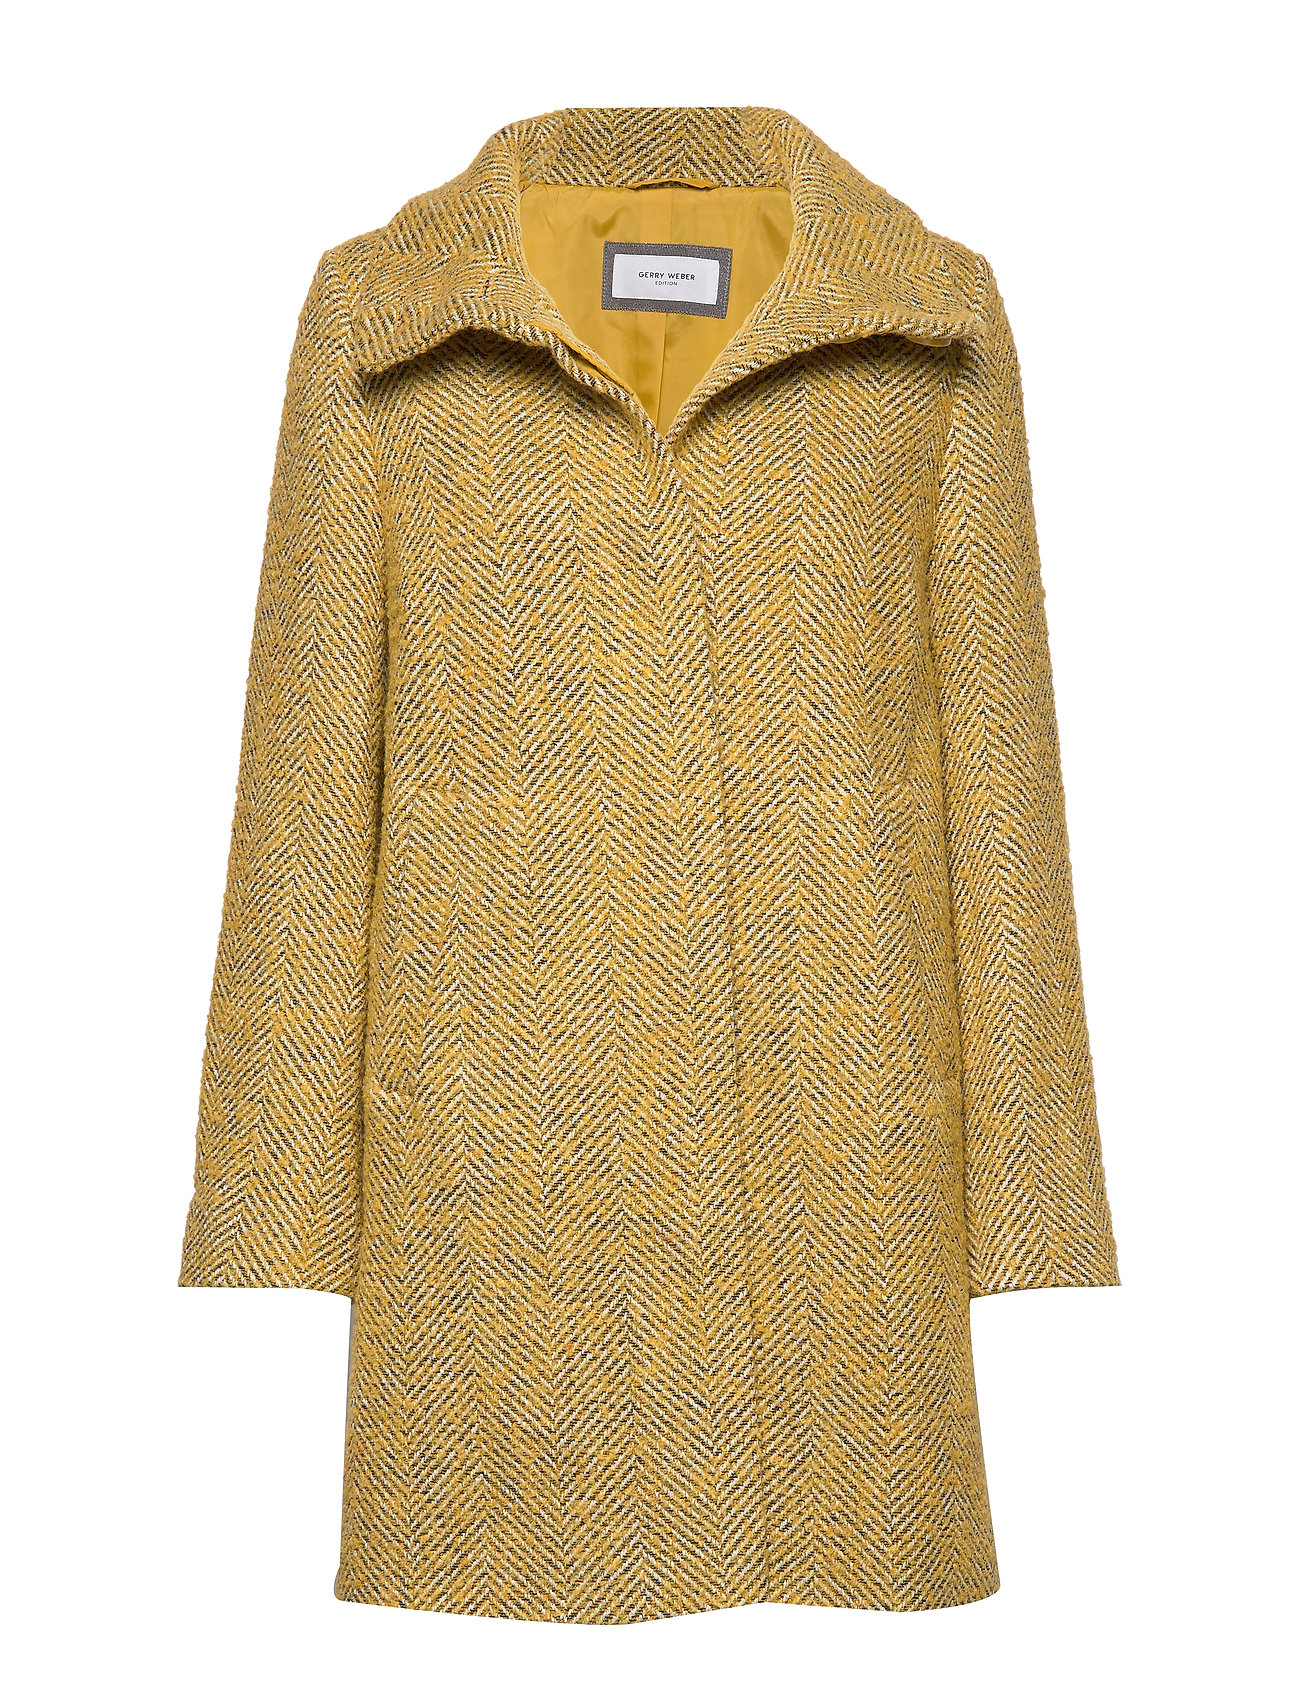 Gerry Weber Edition COAT WOOL - SAUTERNE